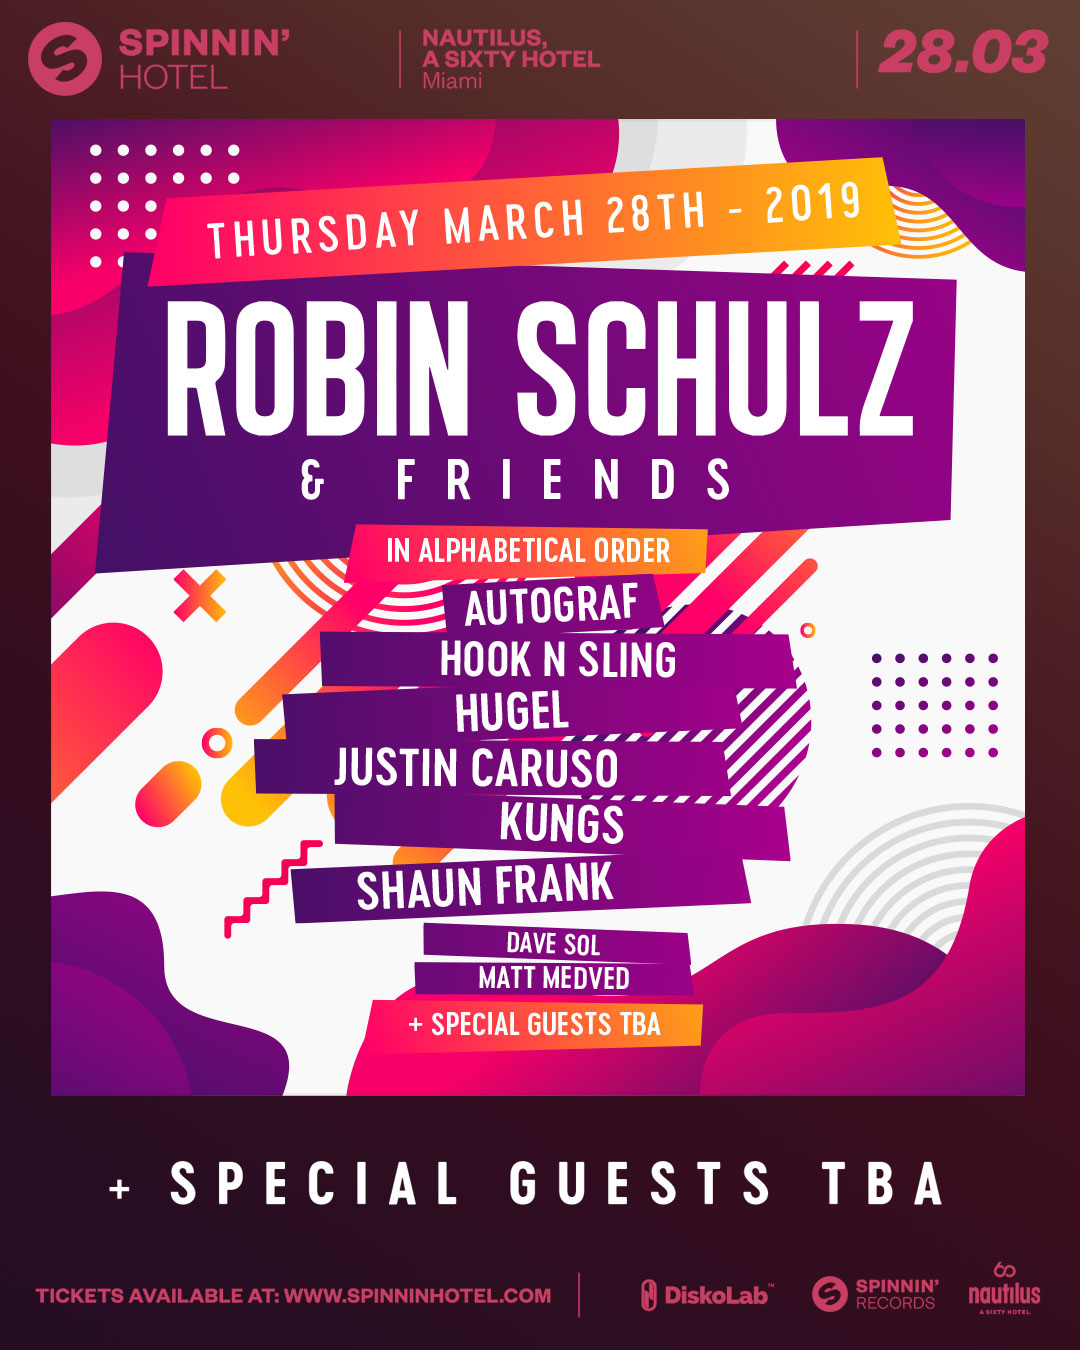 Robin Schulz & Friends at Spinnin' Hotel Image